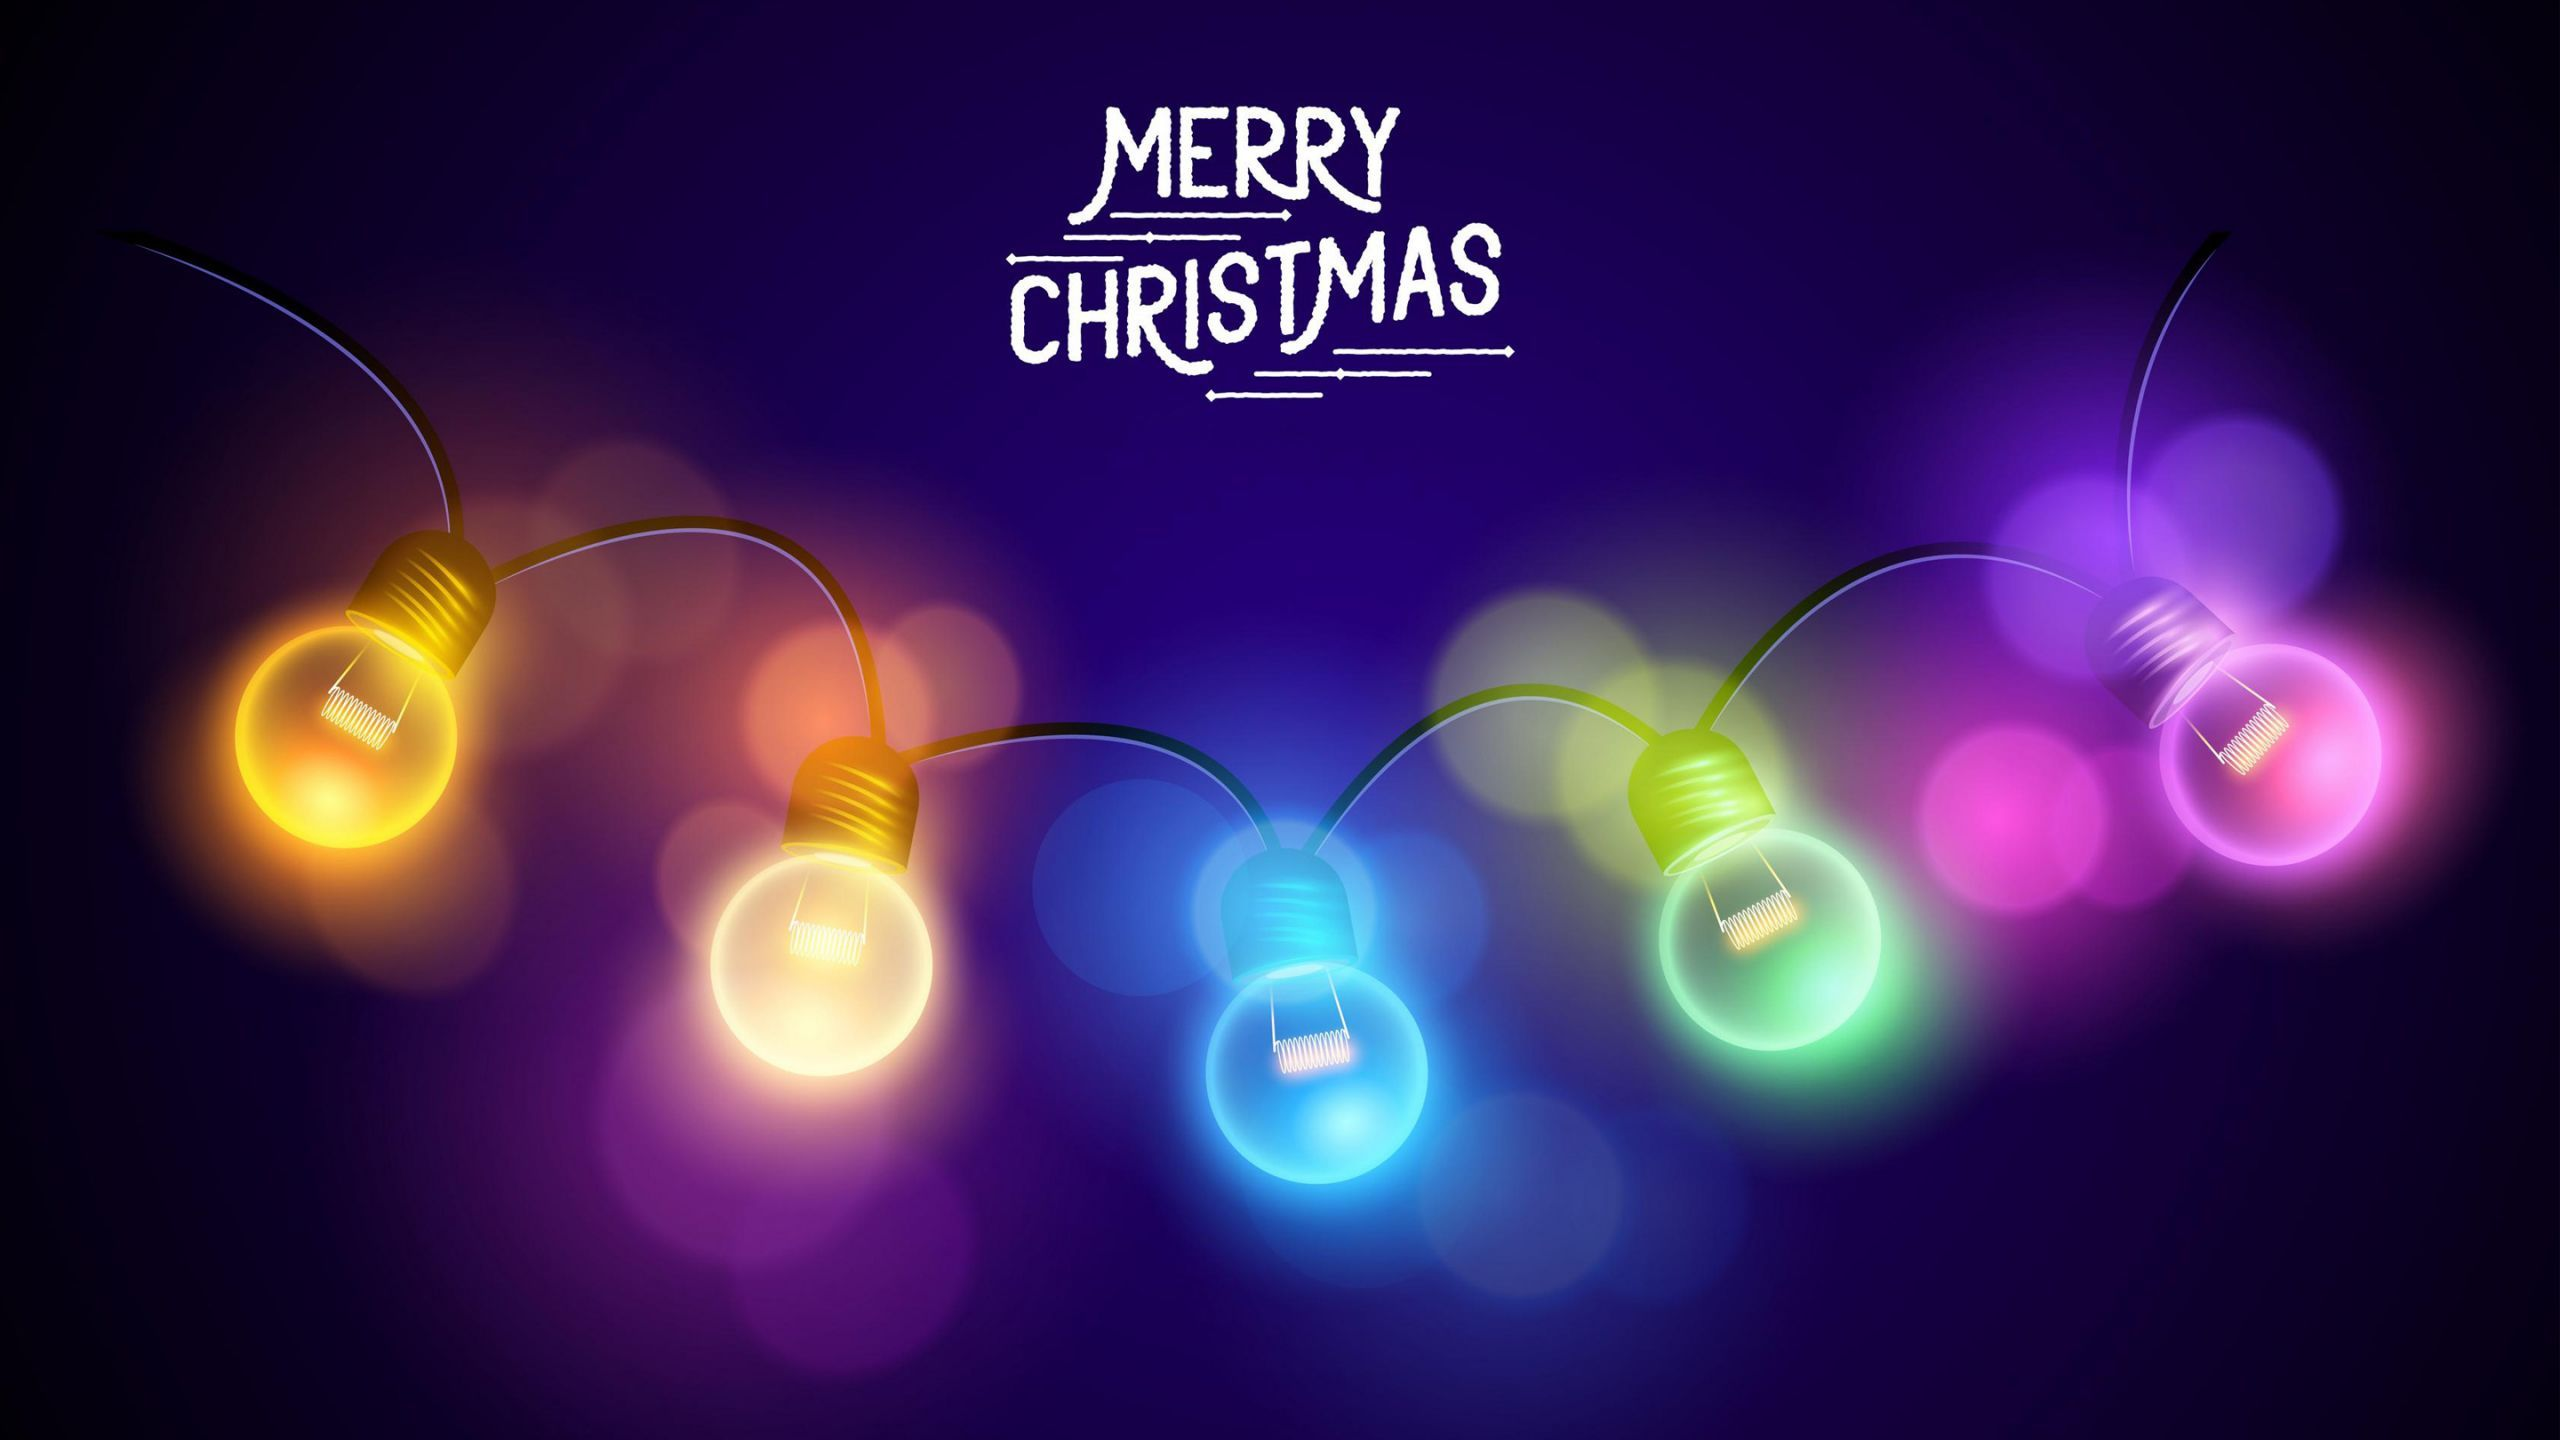 Merry Christmas Lights Wallpaper In 2560x1440 Resolution